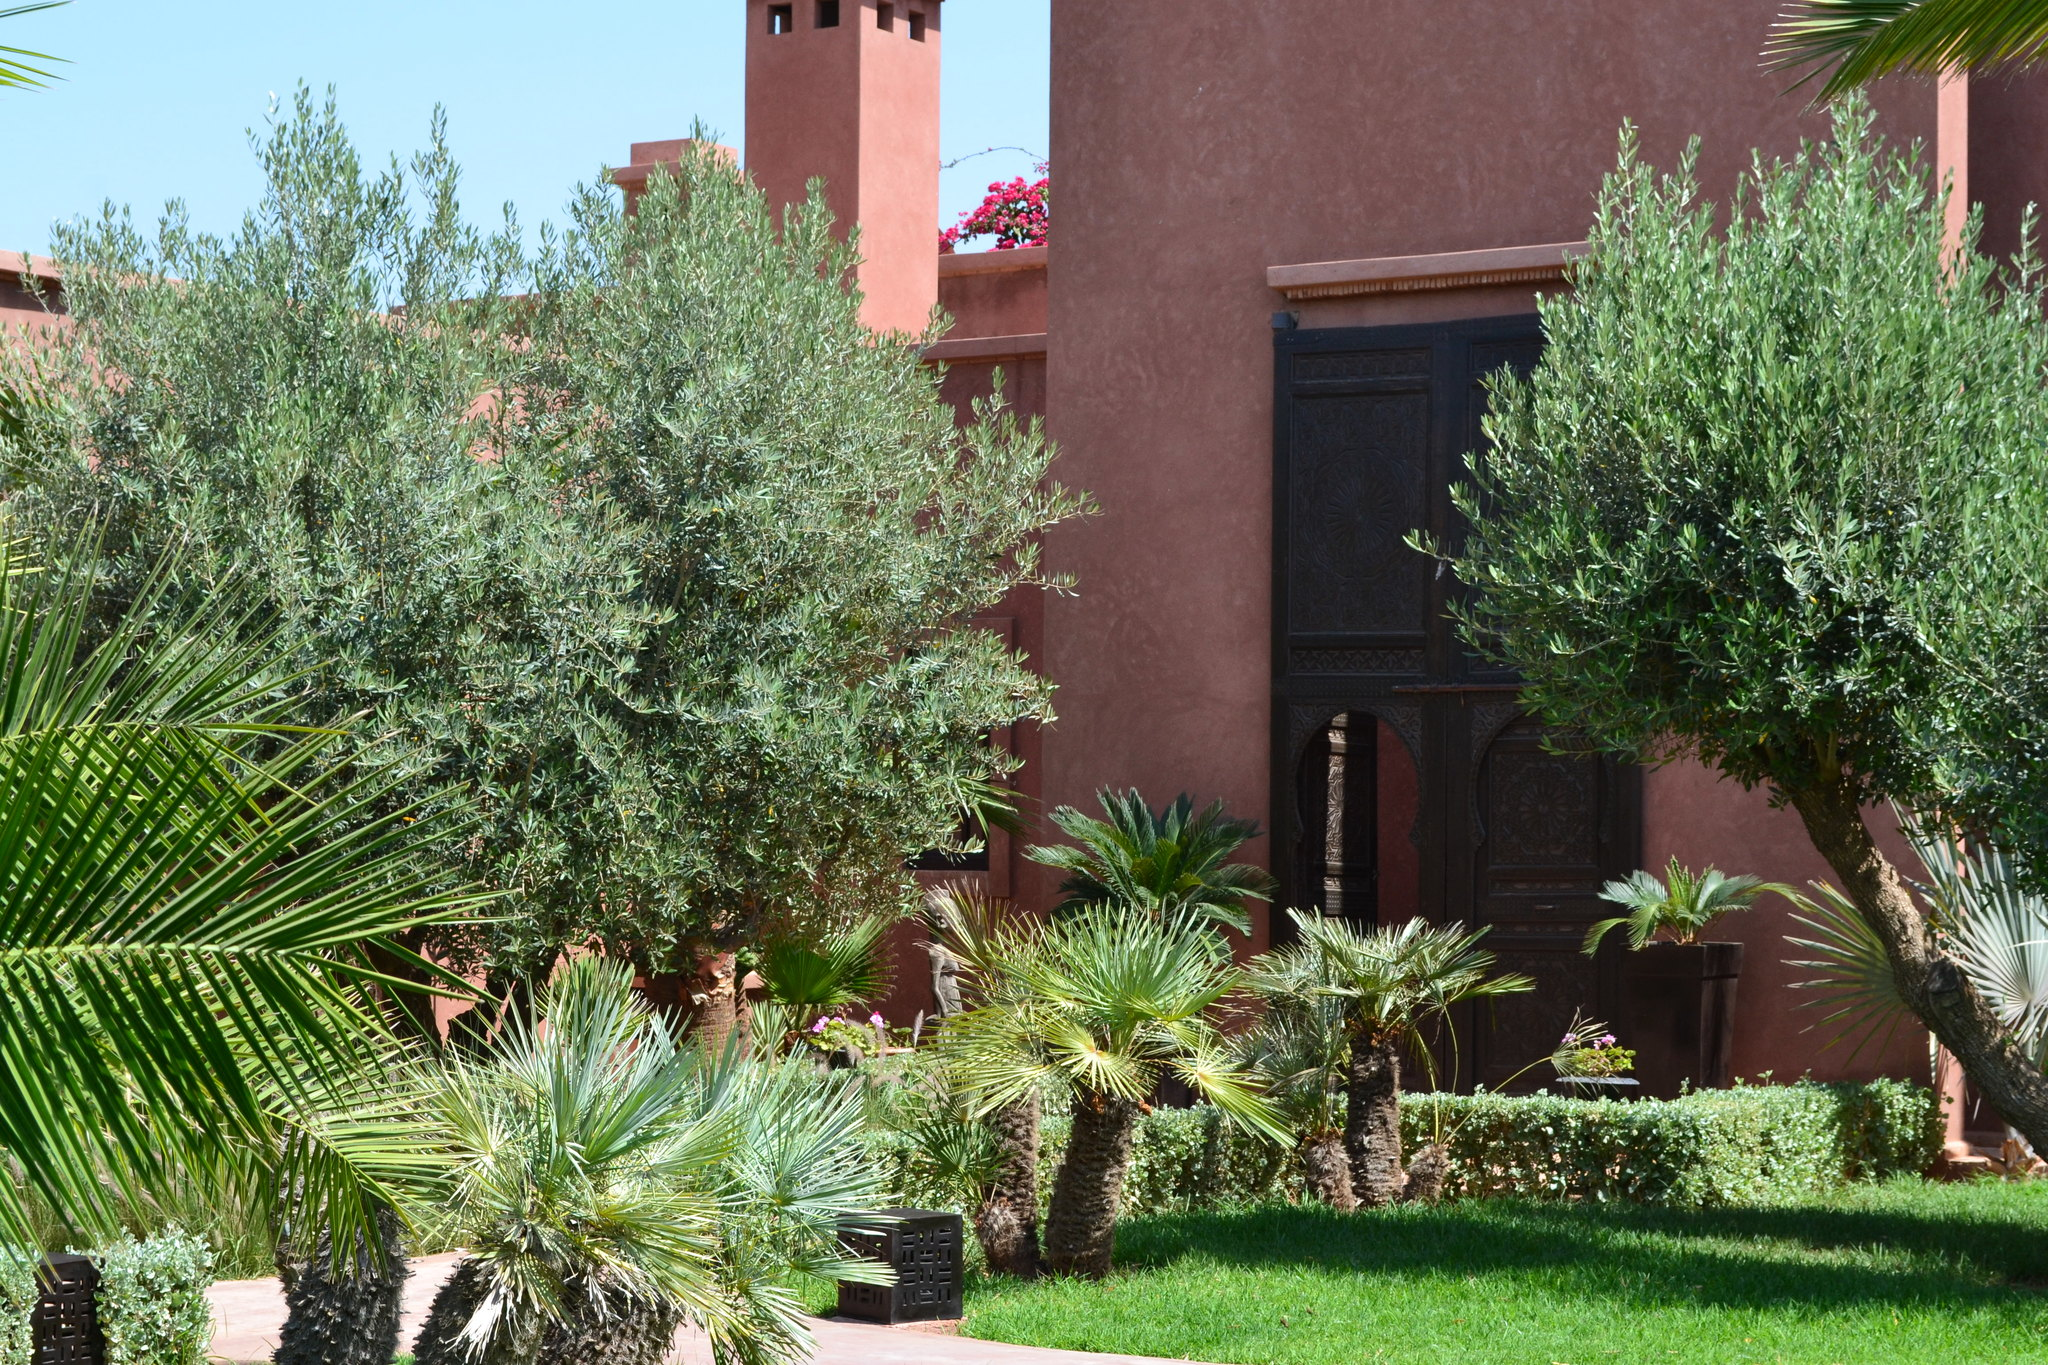 VILLA JADE - PISCINE, HAMMAM, PETIT-DEJEUNER INCLUS A MARRAKECH photo 20305222